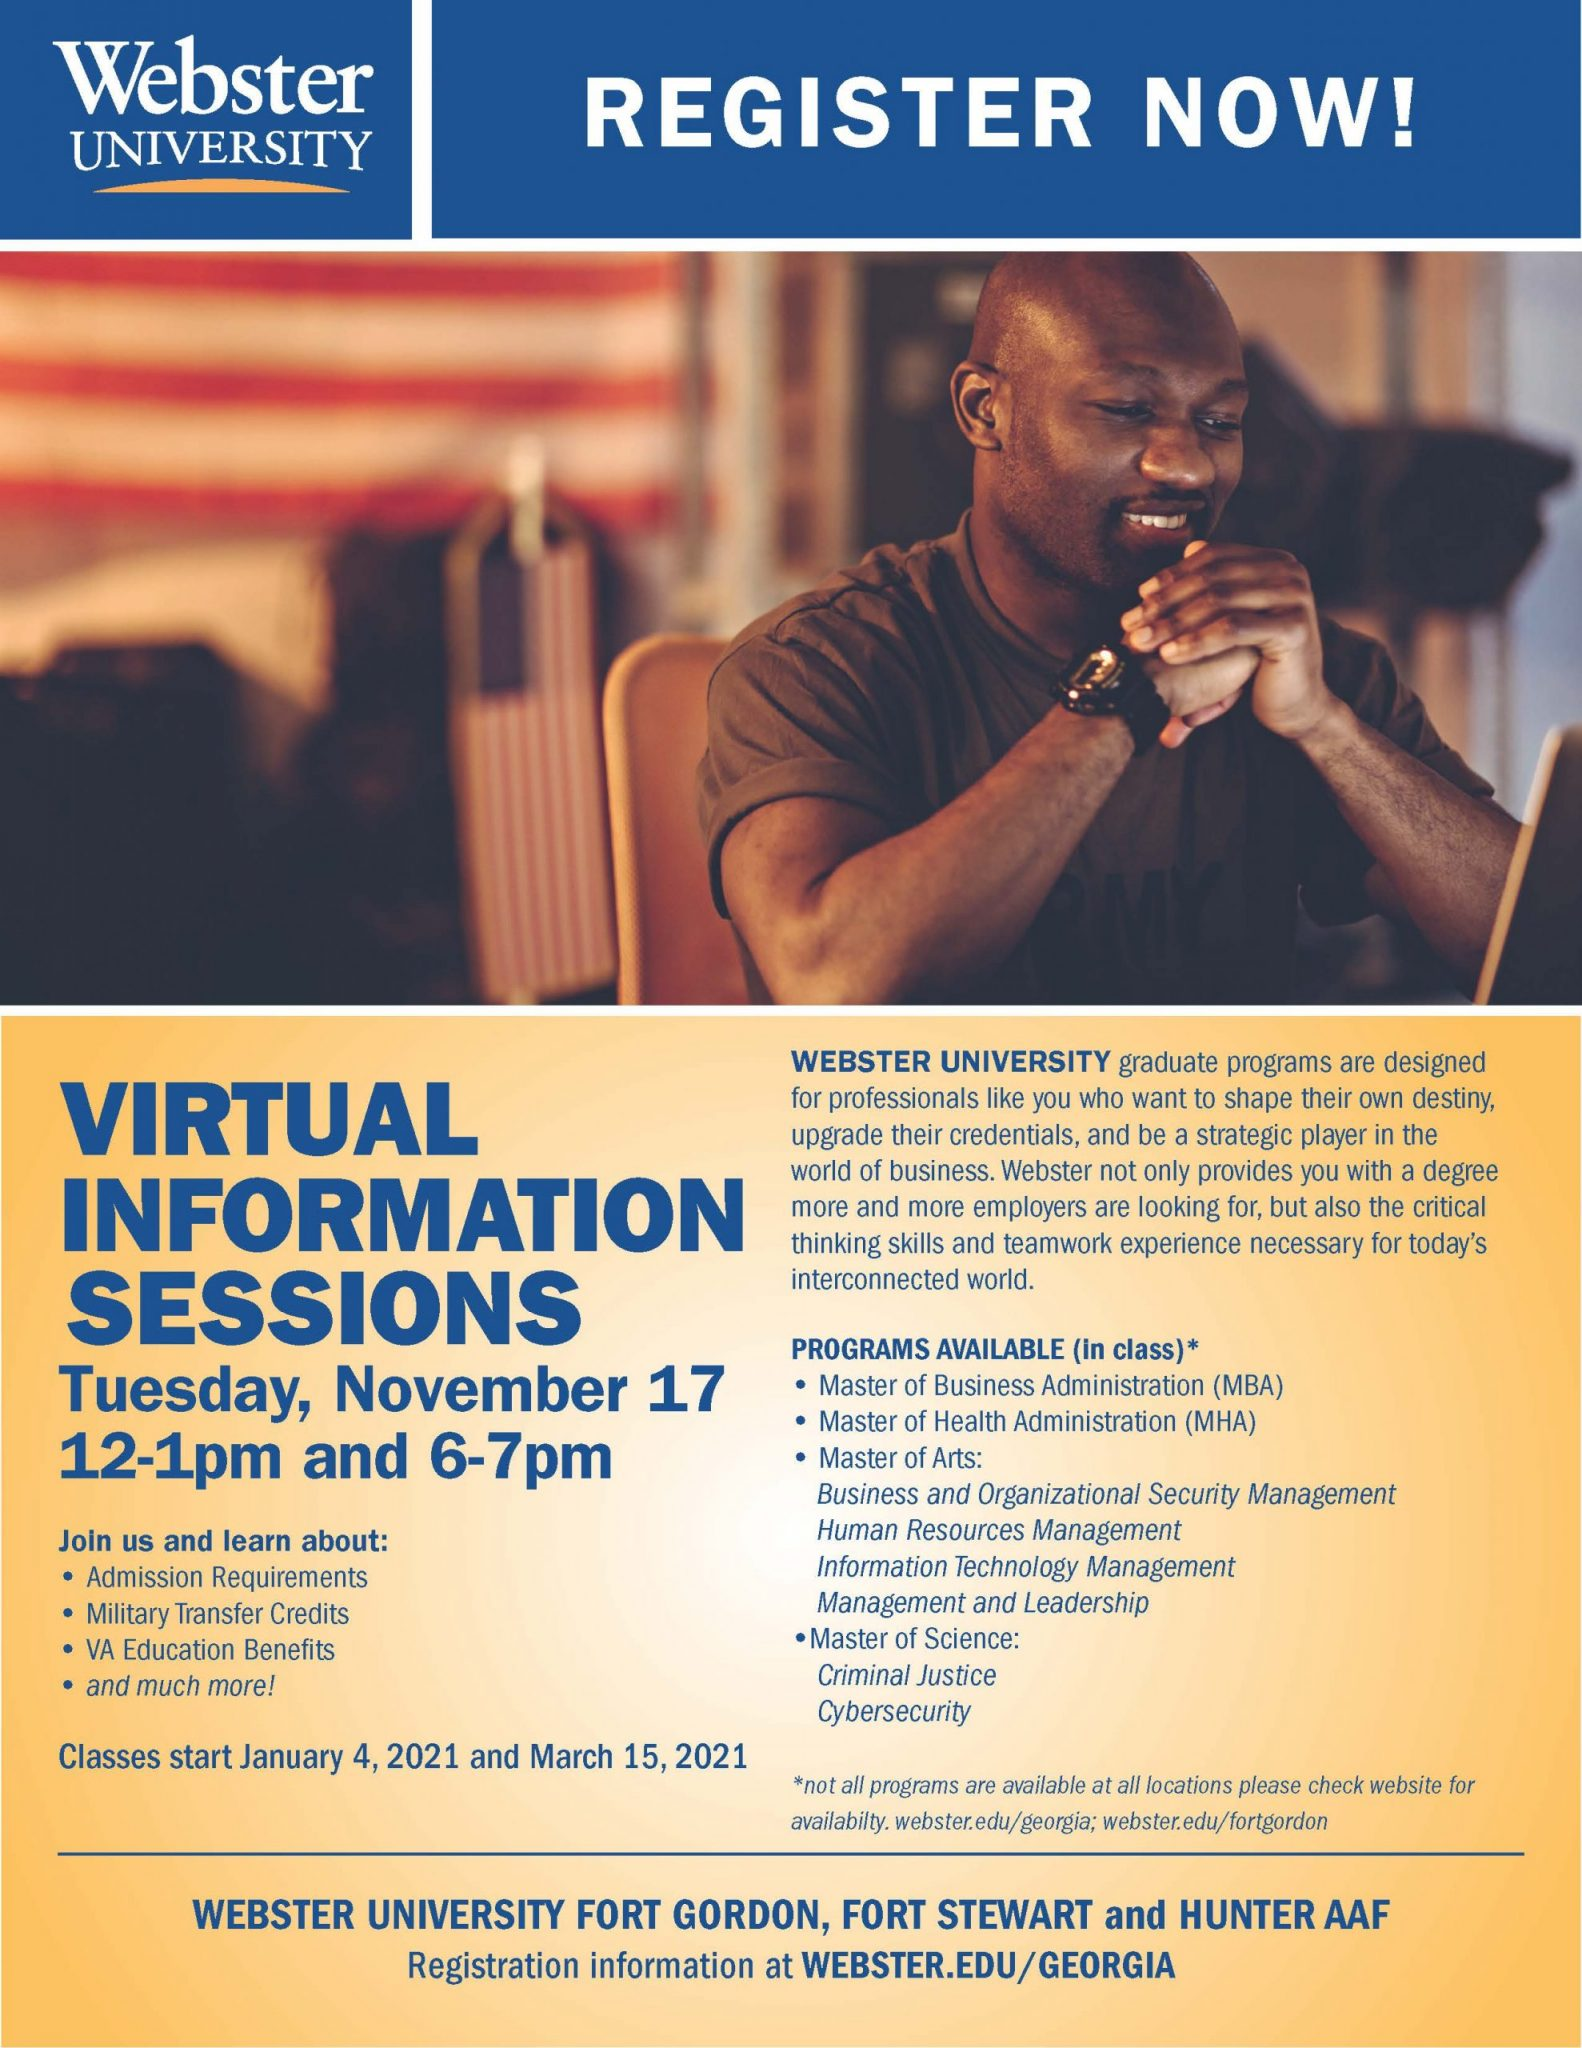 webster university virtual information sessions